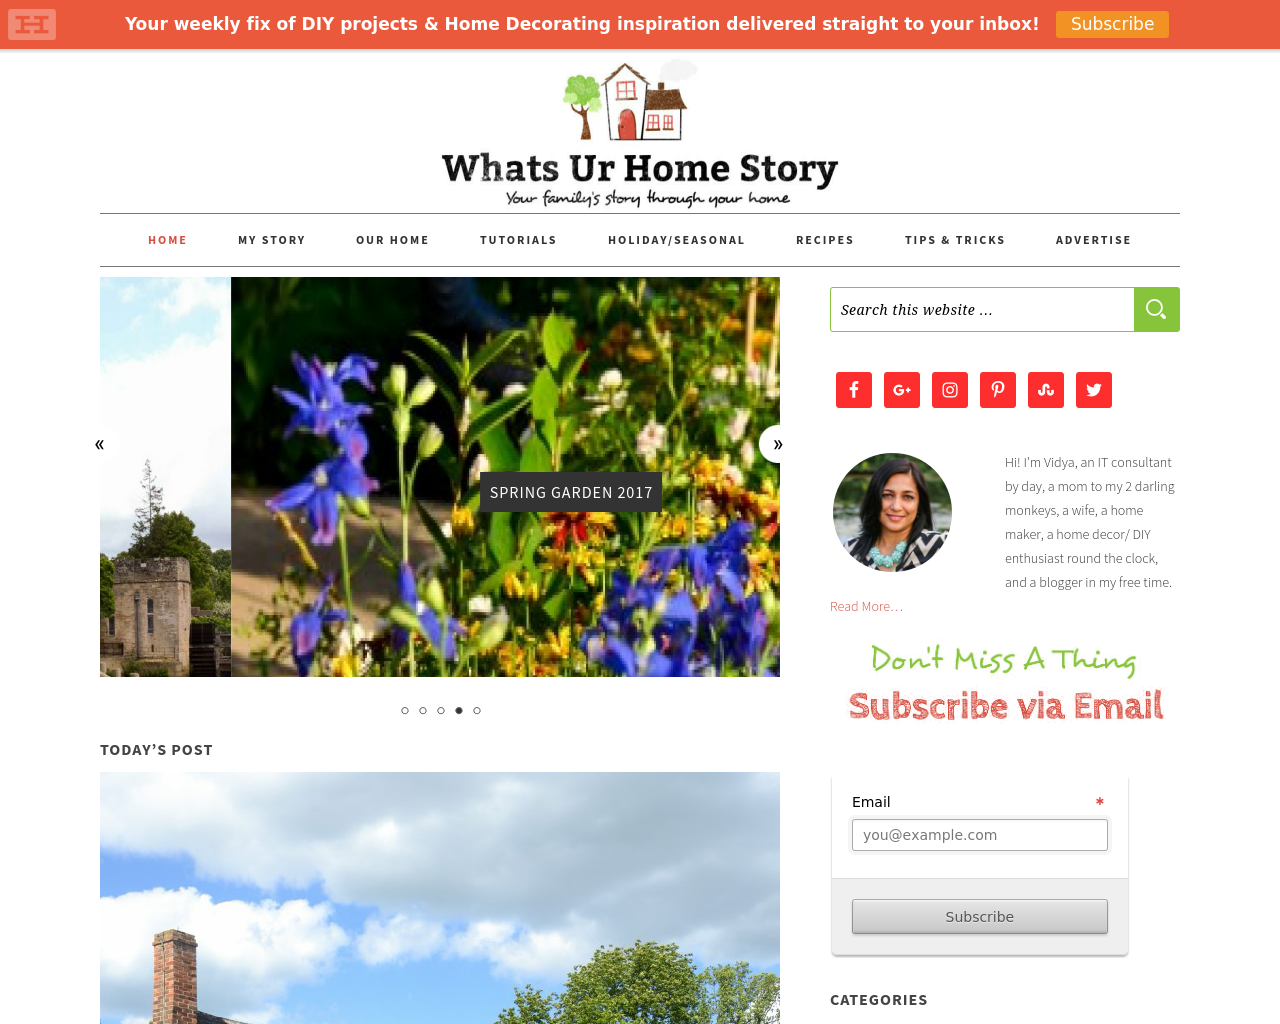 Whats-ur-home-story-Advertising-Reviews-Pricing